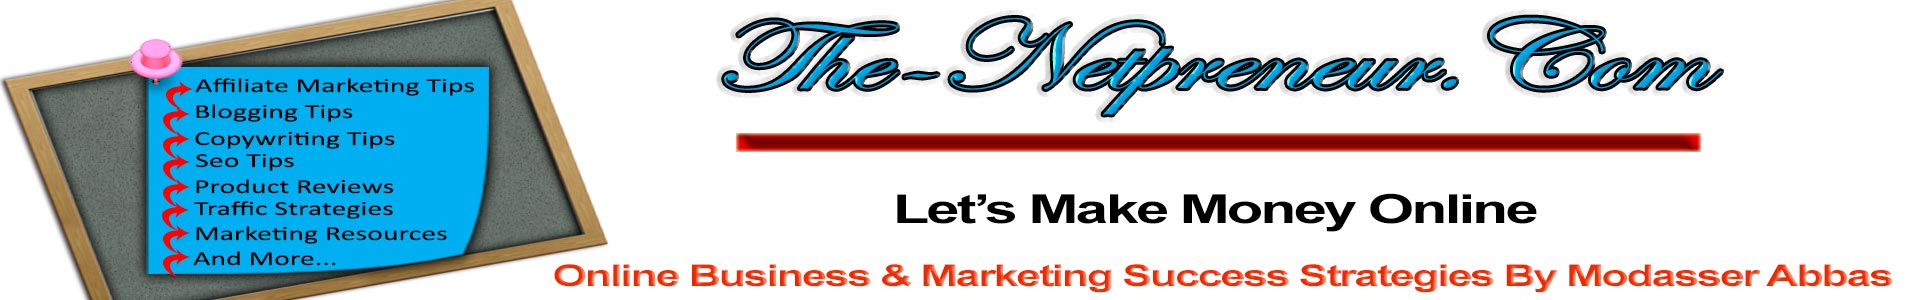 The-Netpreneur's Affiliate Marketing Strategies